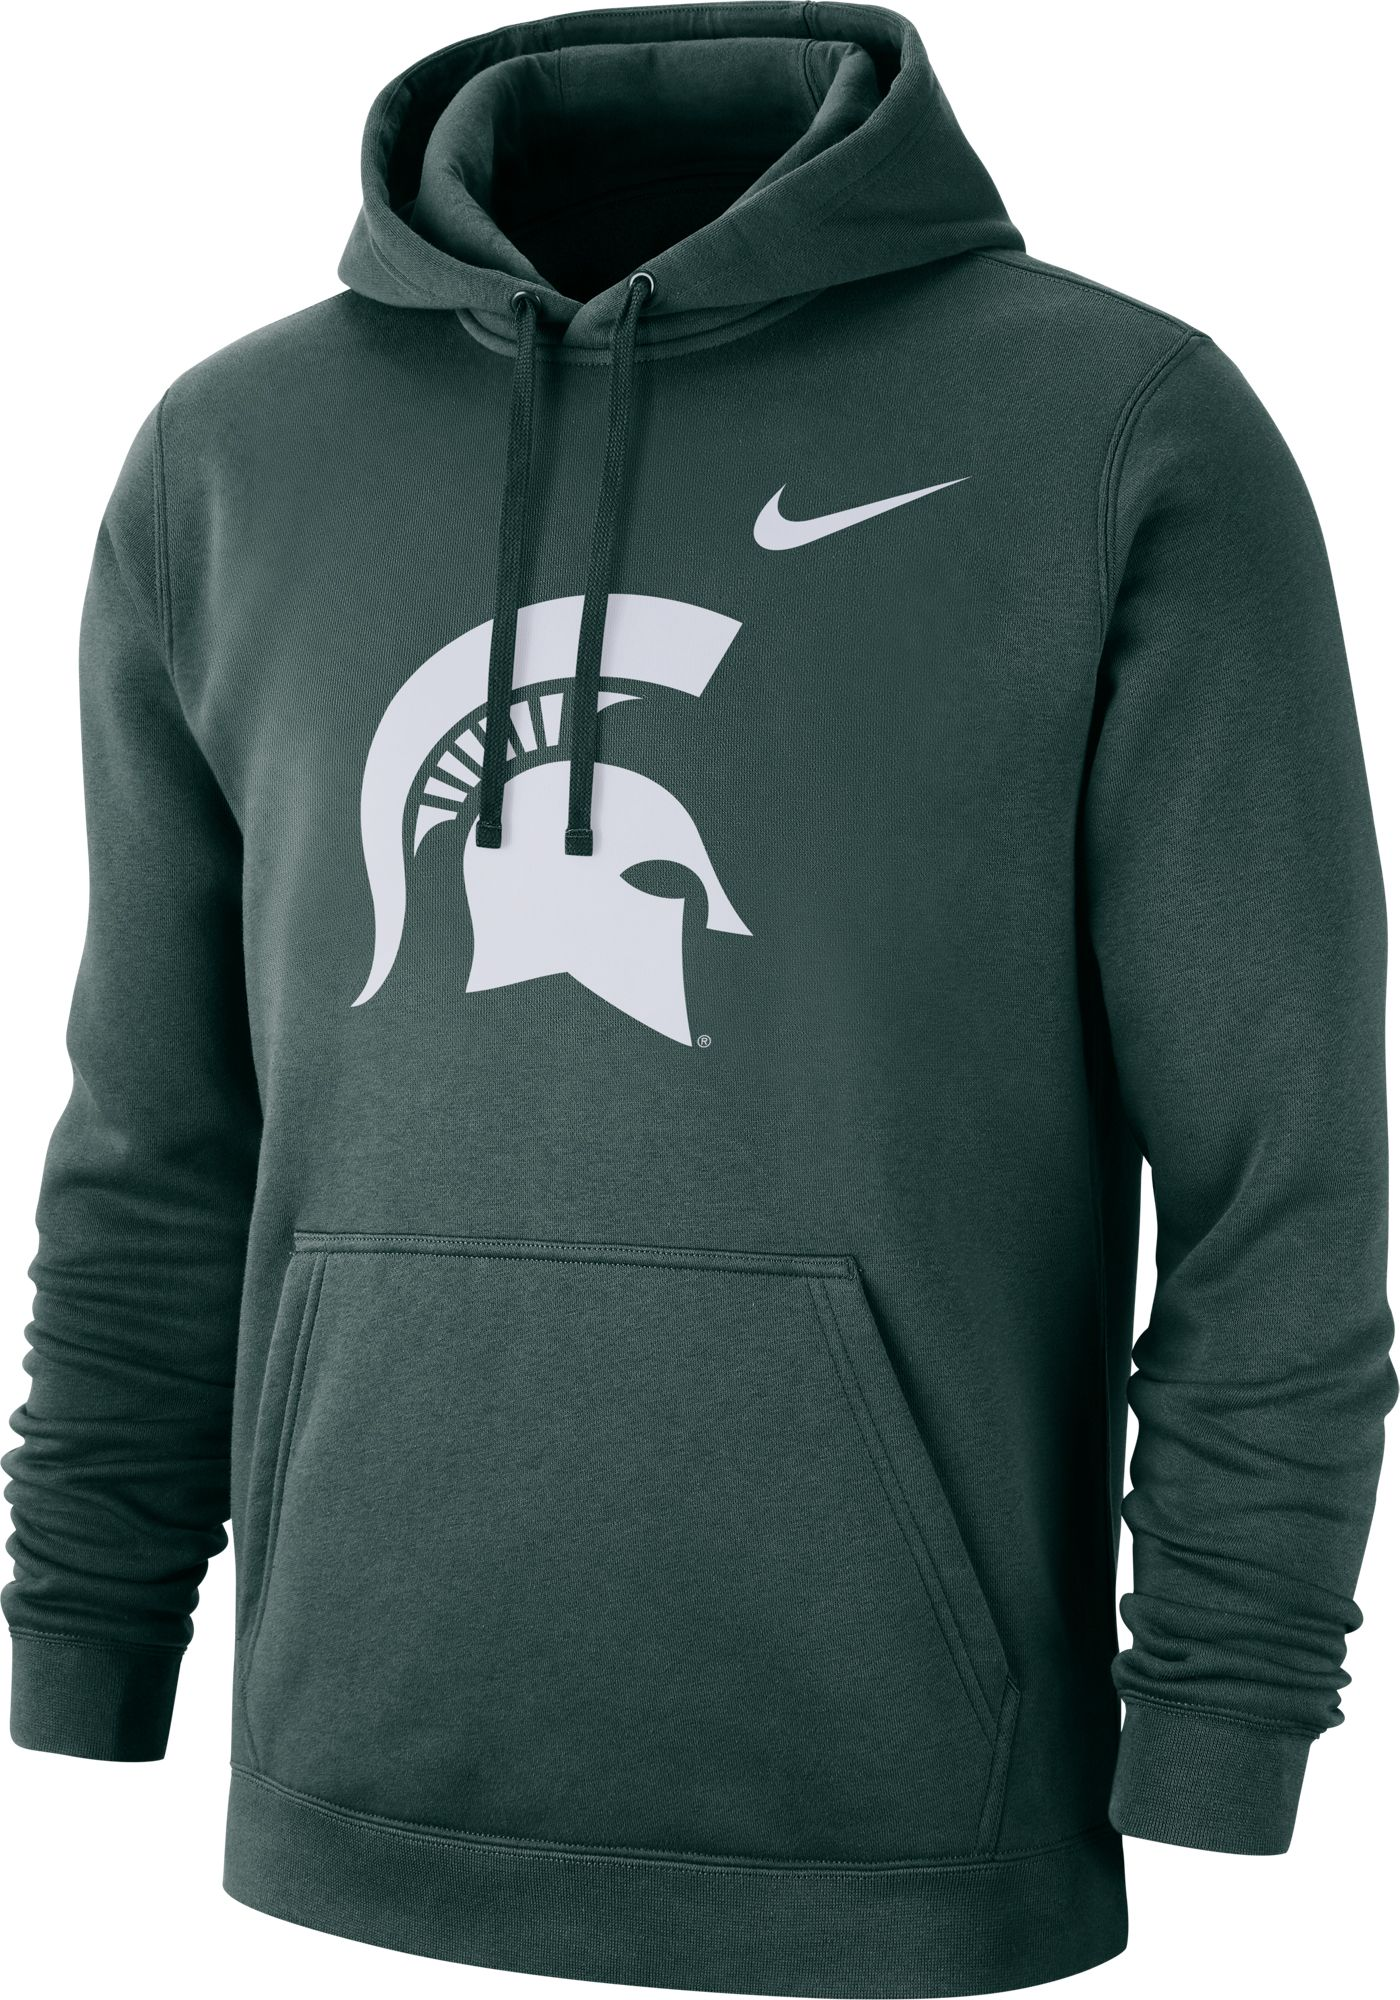 Nike Men's Michigan State Spartans Green Club Fleece Pullover Hoodie